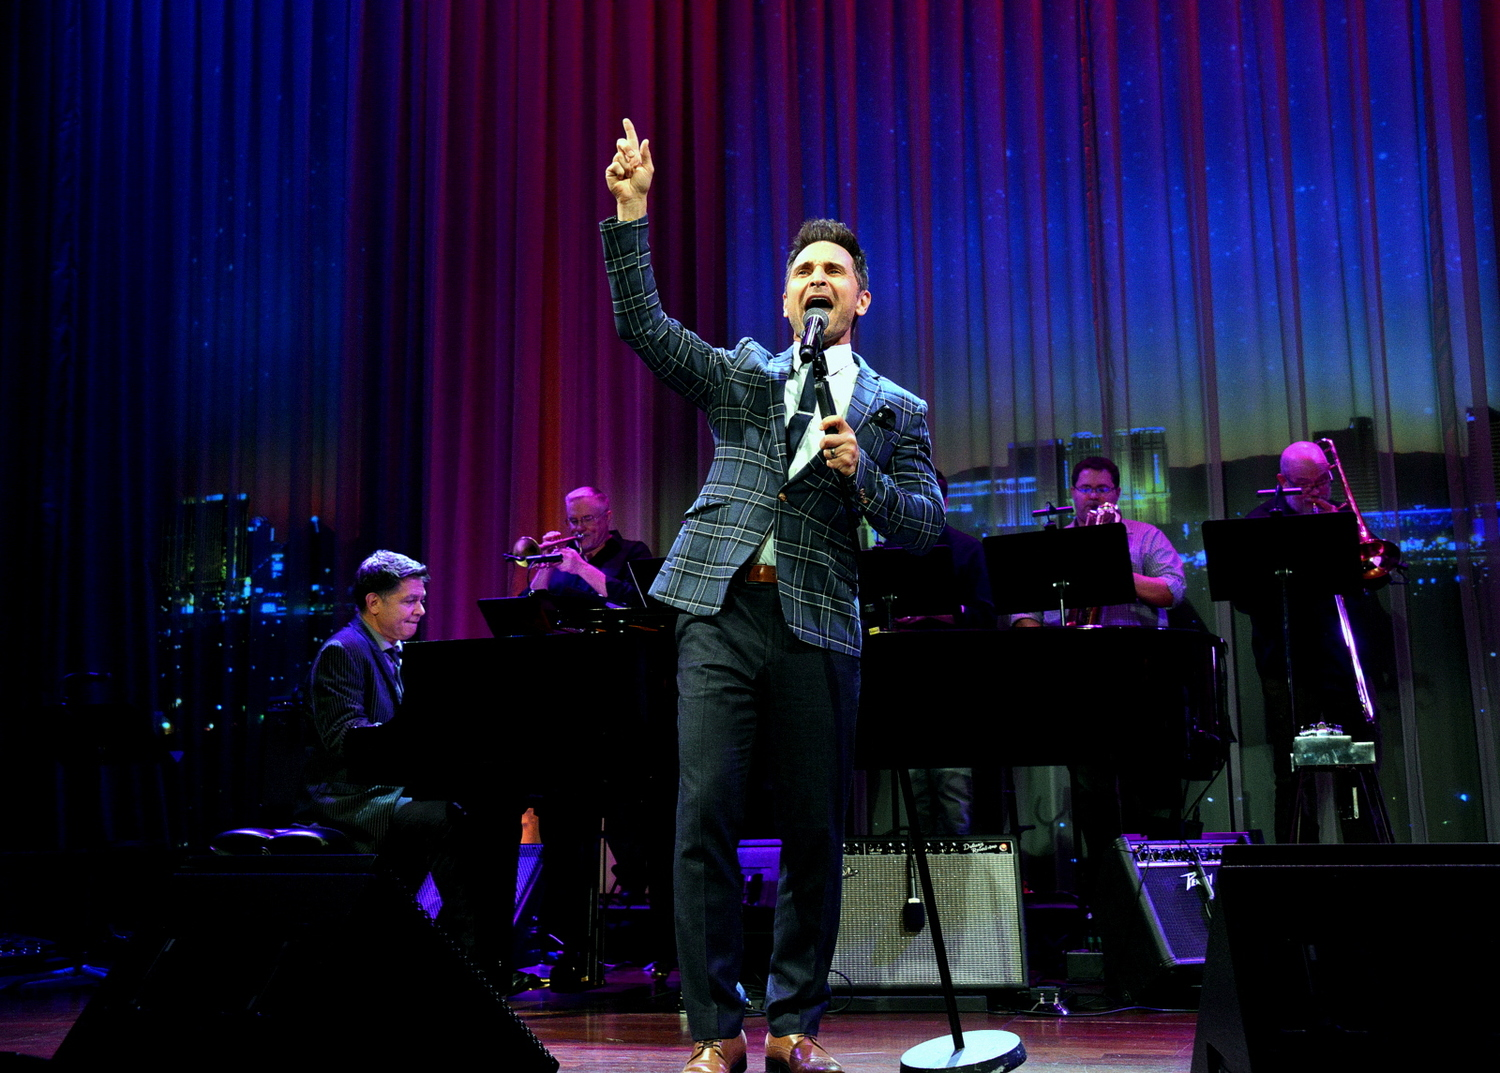 BWW Interview: Travis Cloer of THE LAS VEGAS PHILHARMONIC PRESENTS A CLASSIC HOLIDAY at The Smith Center For The Performing Arts